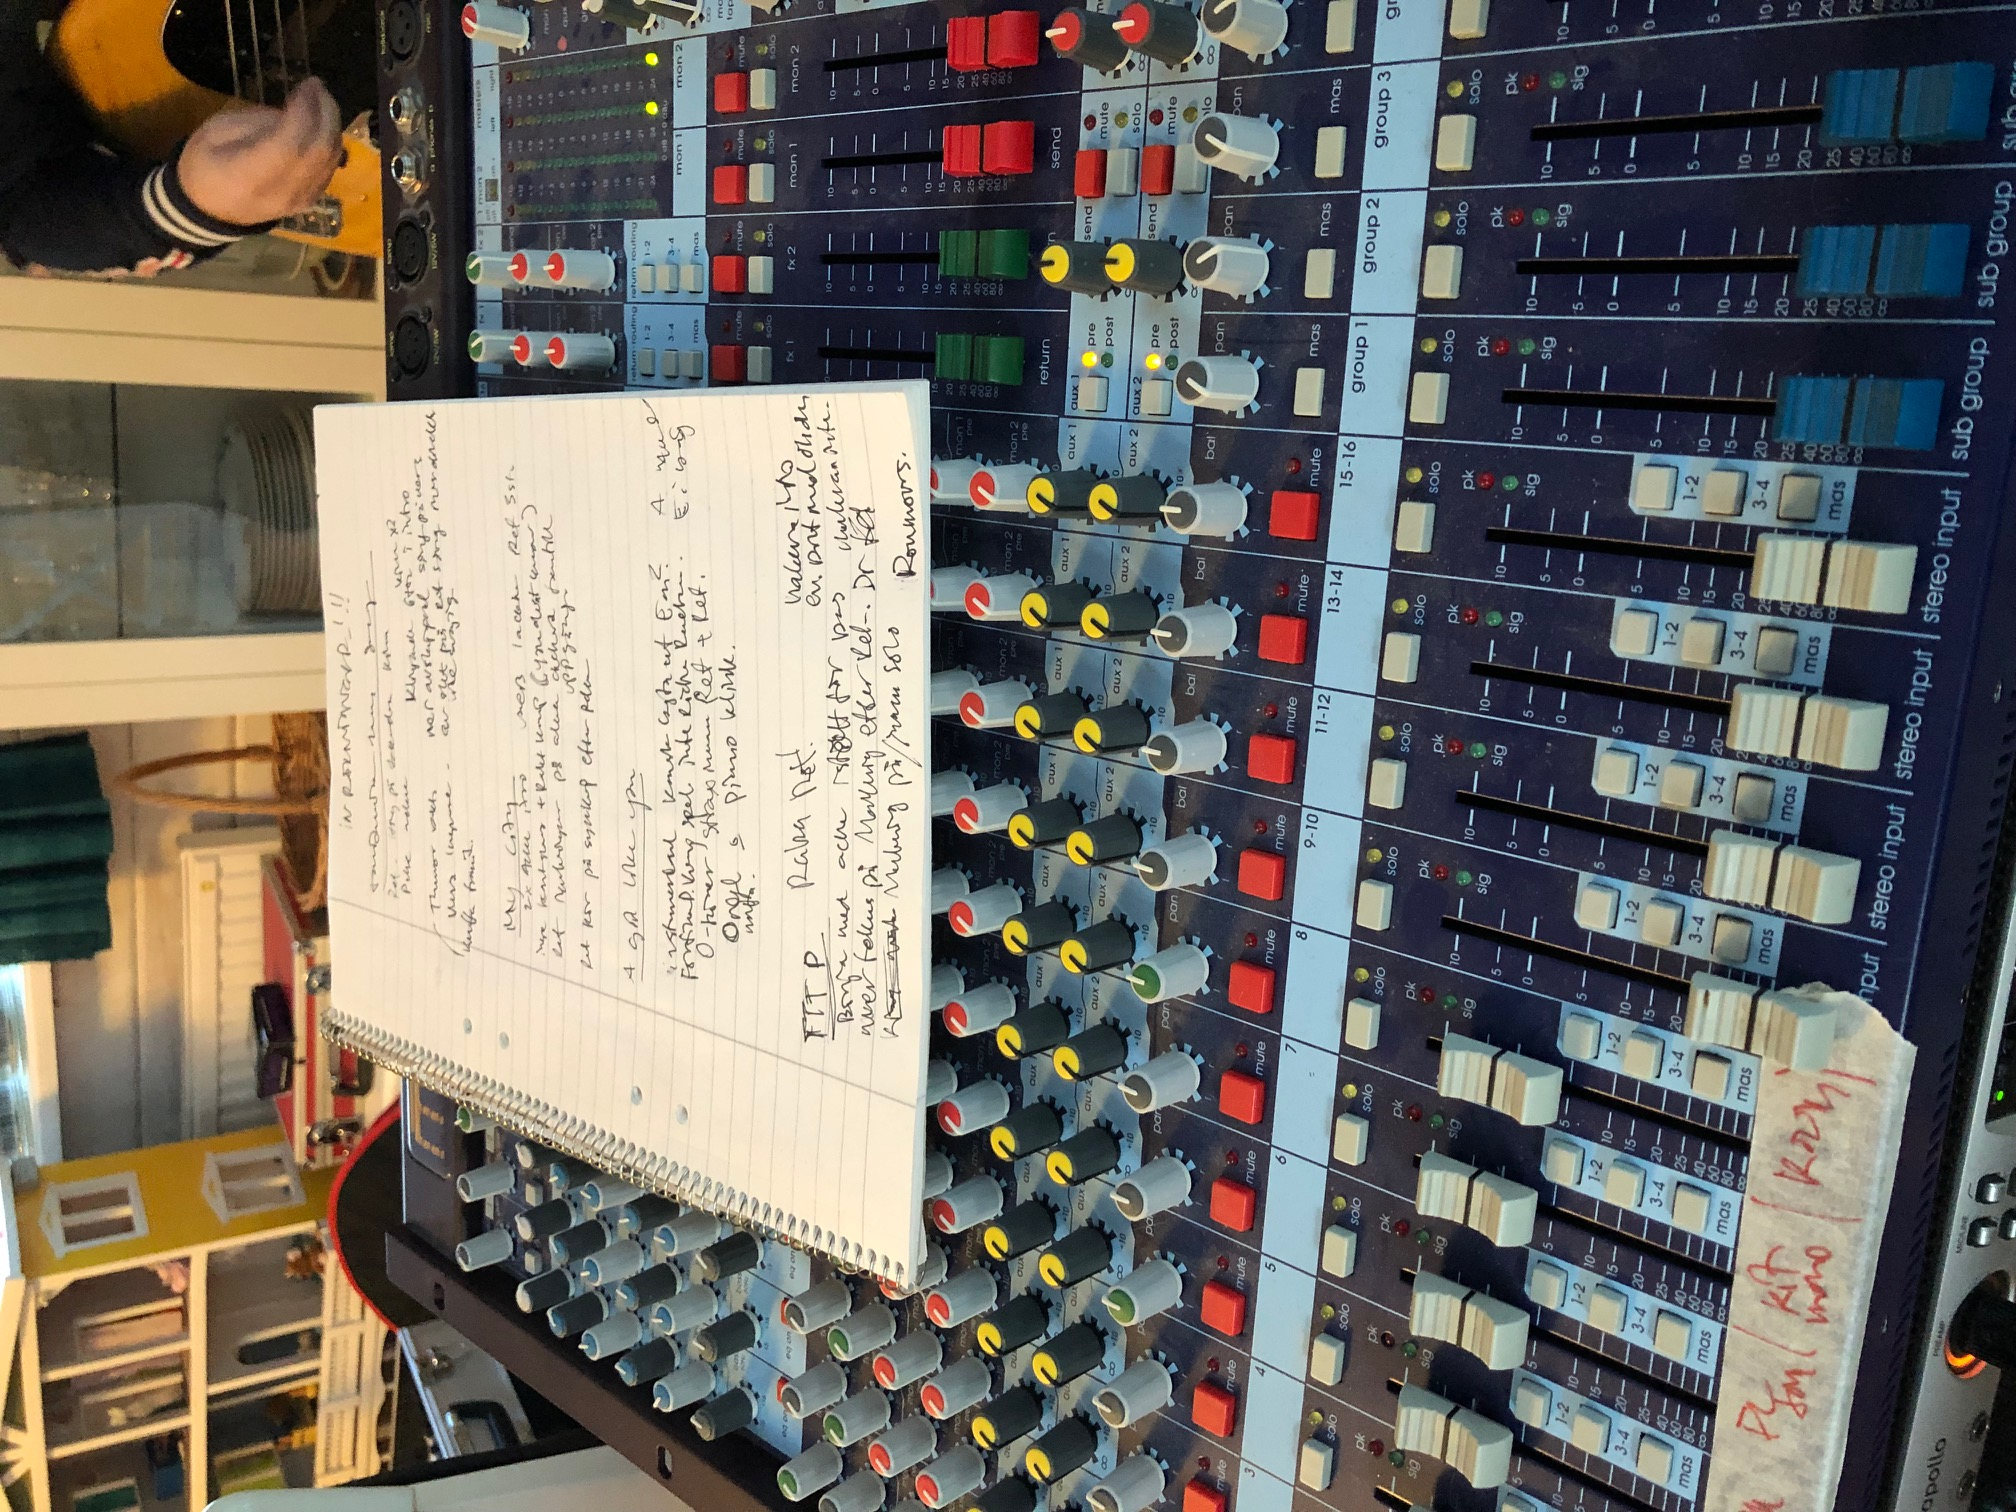 Mixer and Producer notes